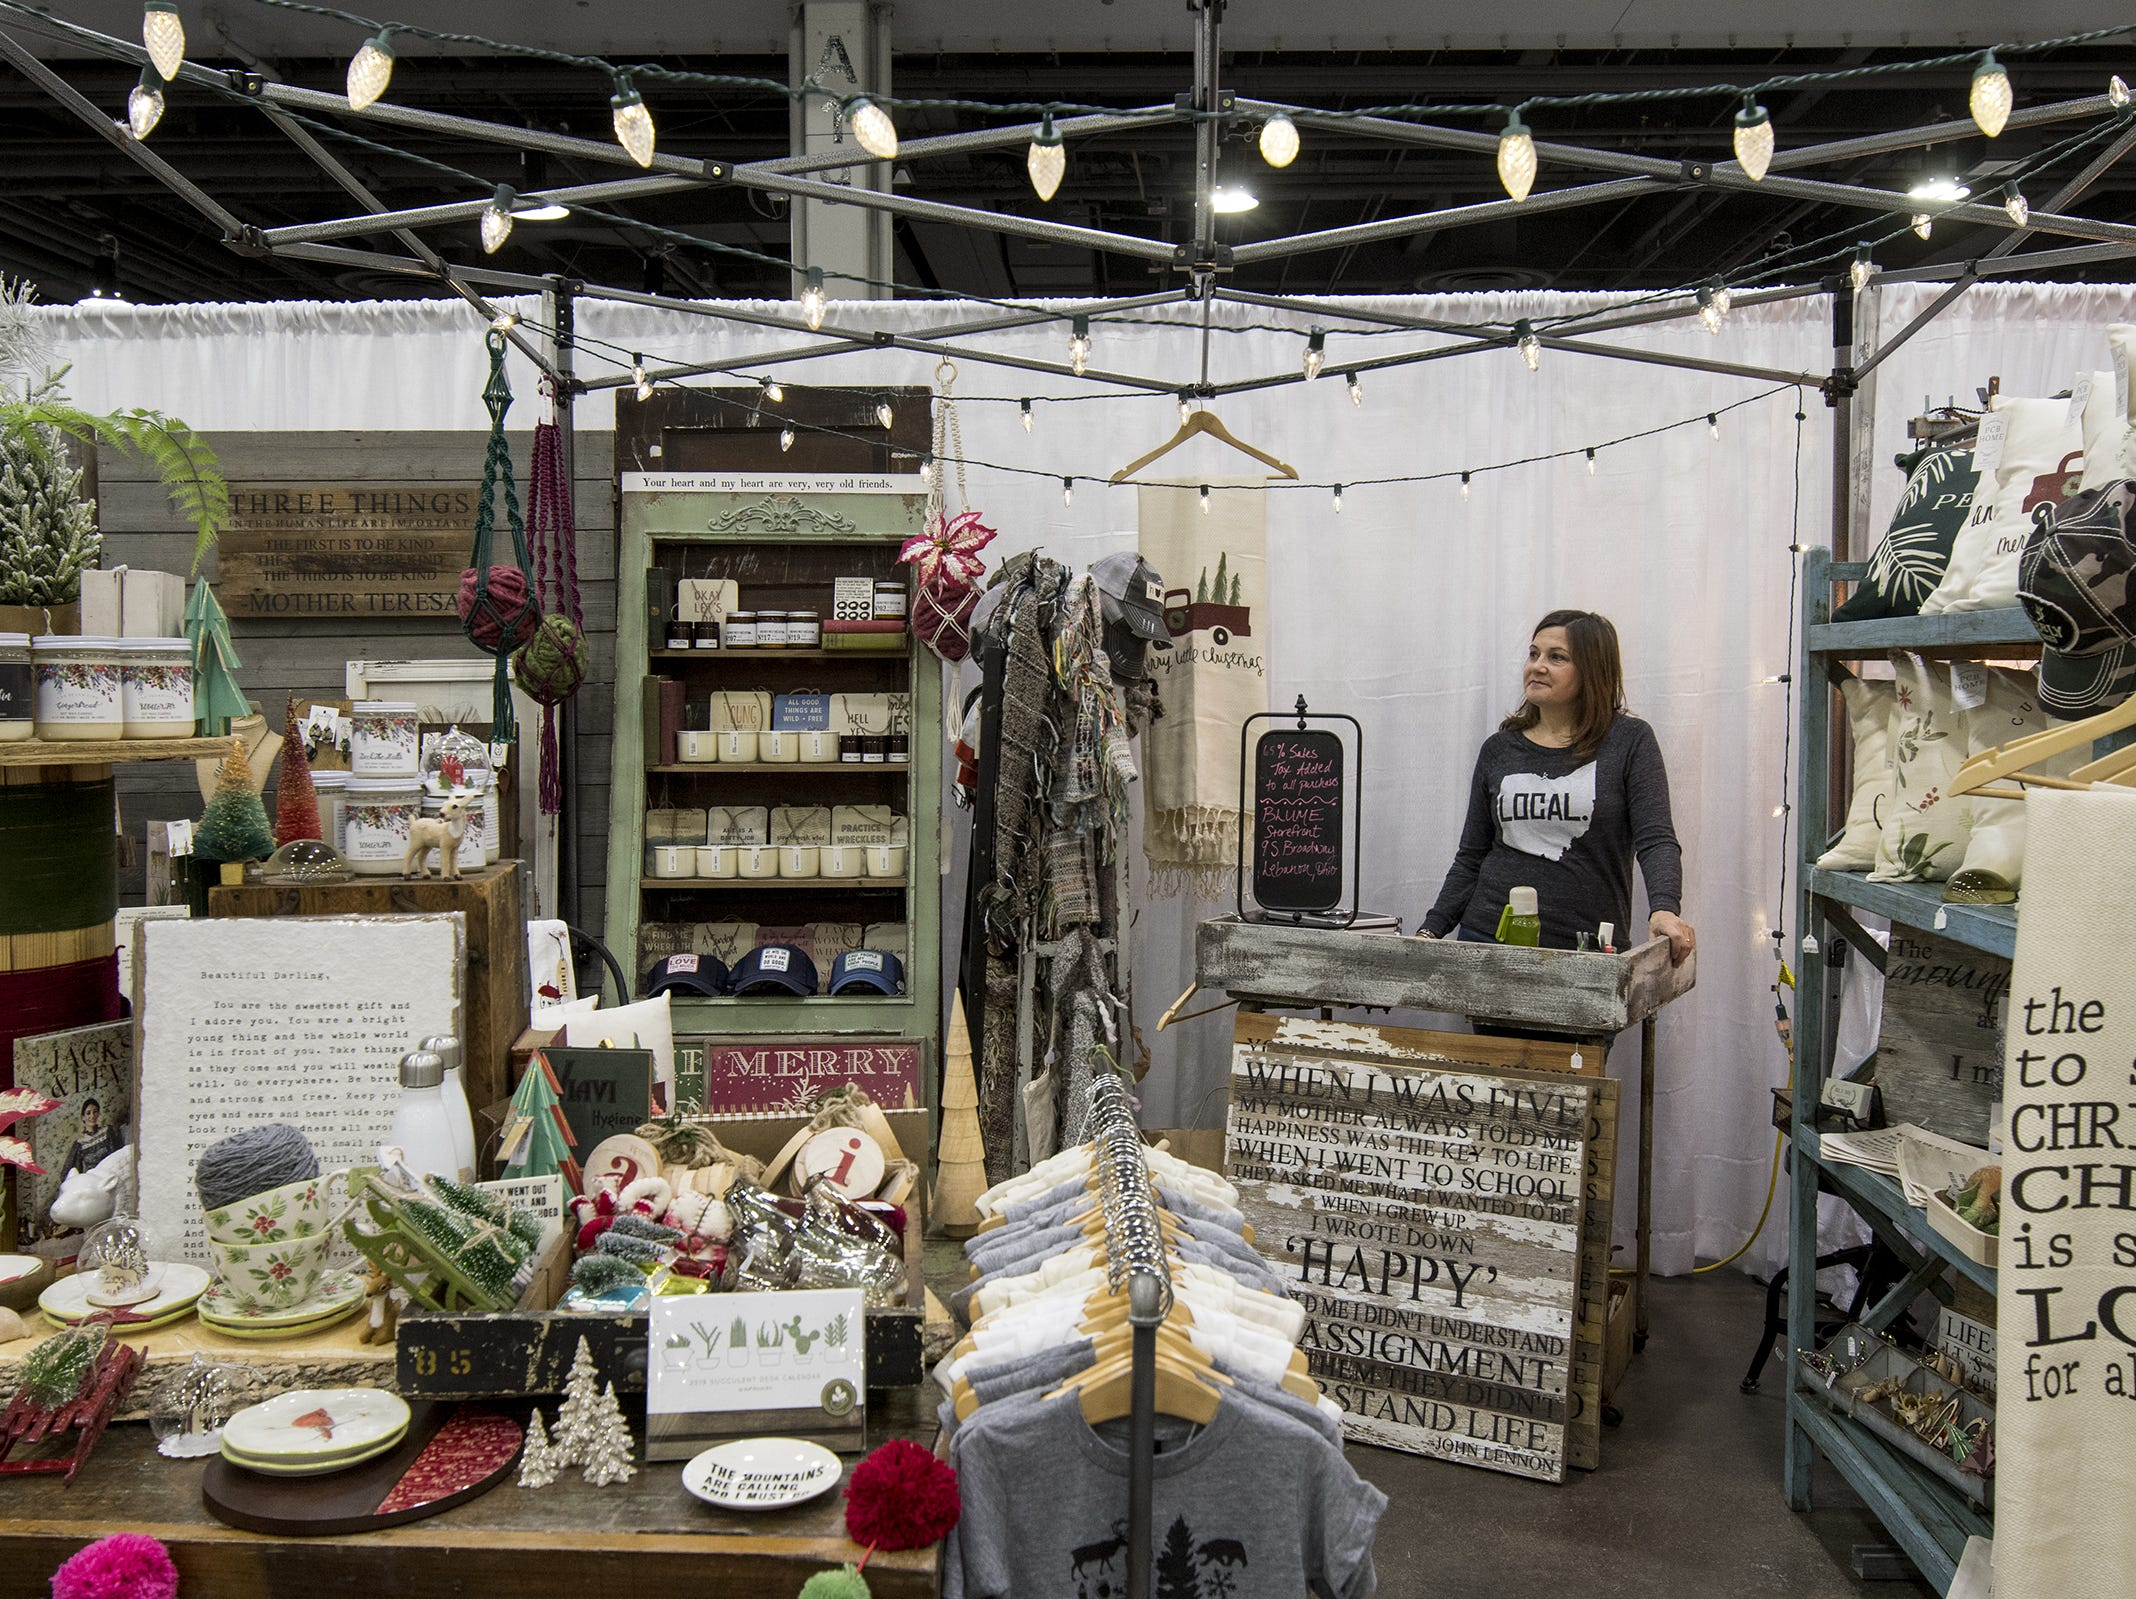 Amanda Marsh of Blume, stands in her decorated booth during the Greater Cincinnati Holiday Market at the Duke Energy Center Friday, November 2, 2018 in Cincinnati, Ohio. The event runs through Sunday, November 4.